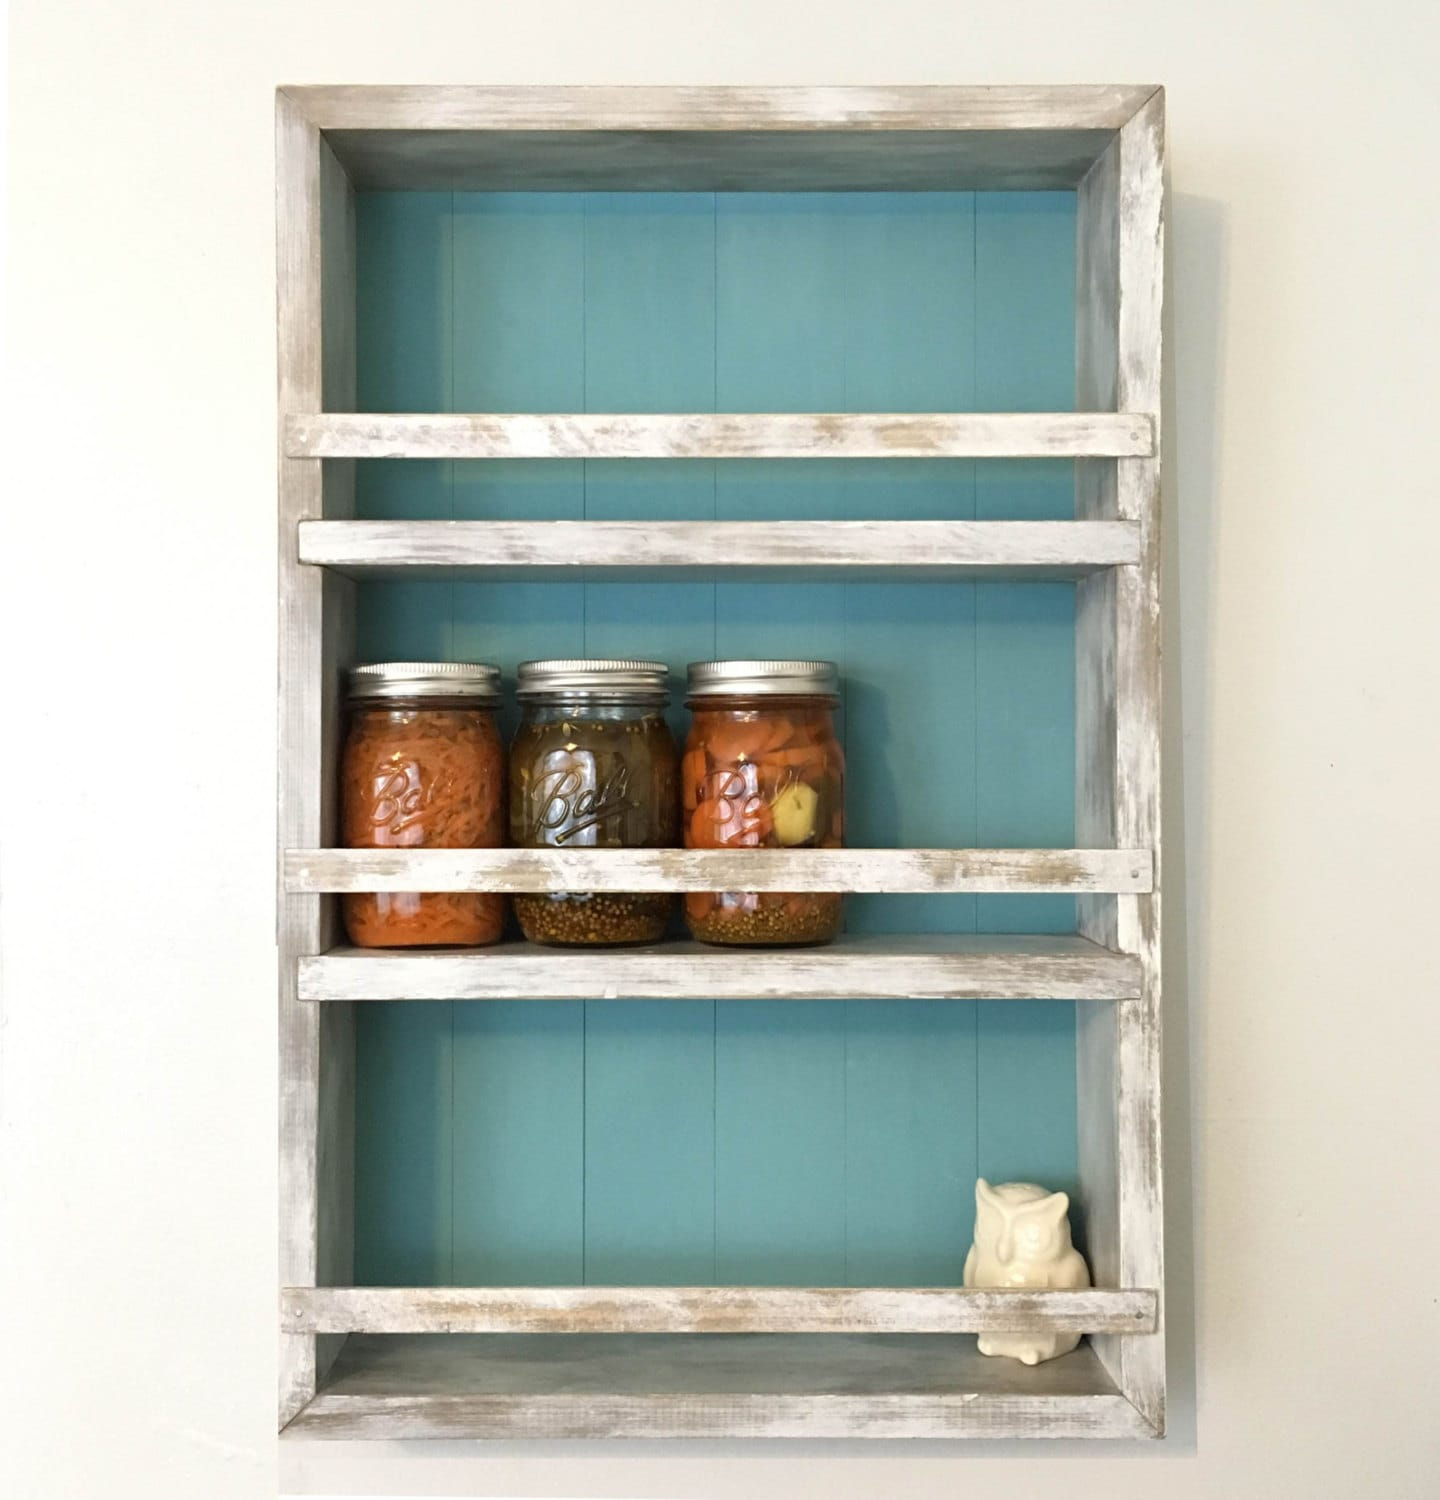 Wall Spice Rack. Best Picture Of Kitchen Wall Shelf That Acts As A ...